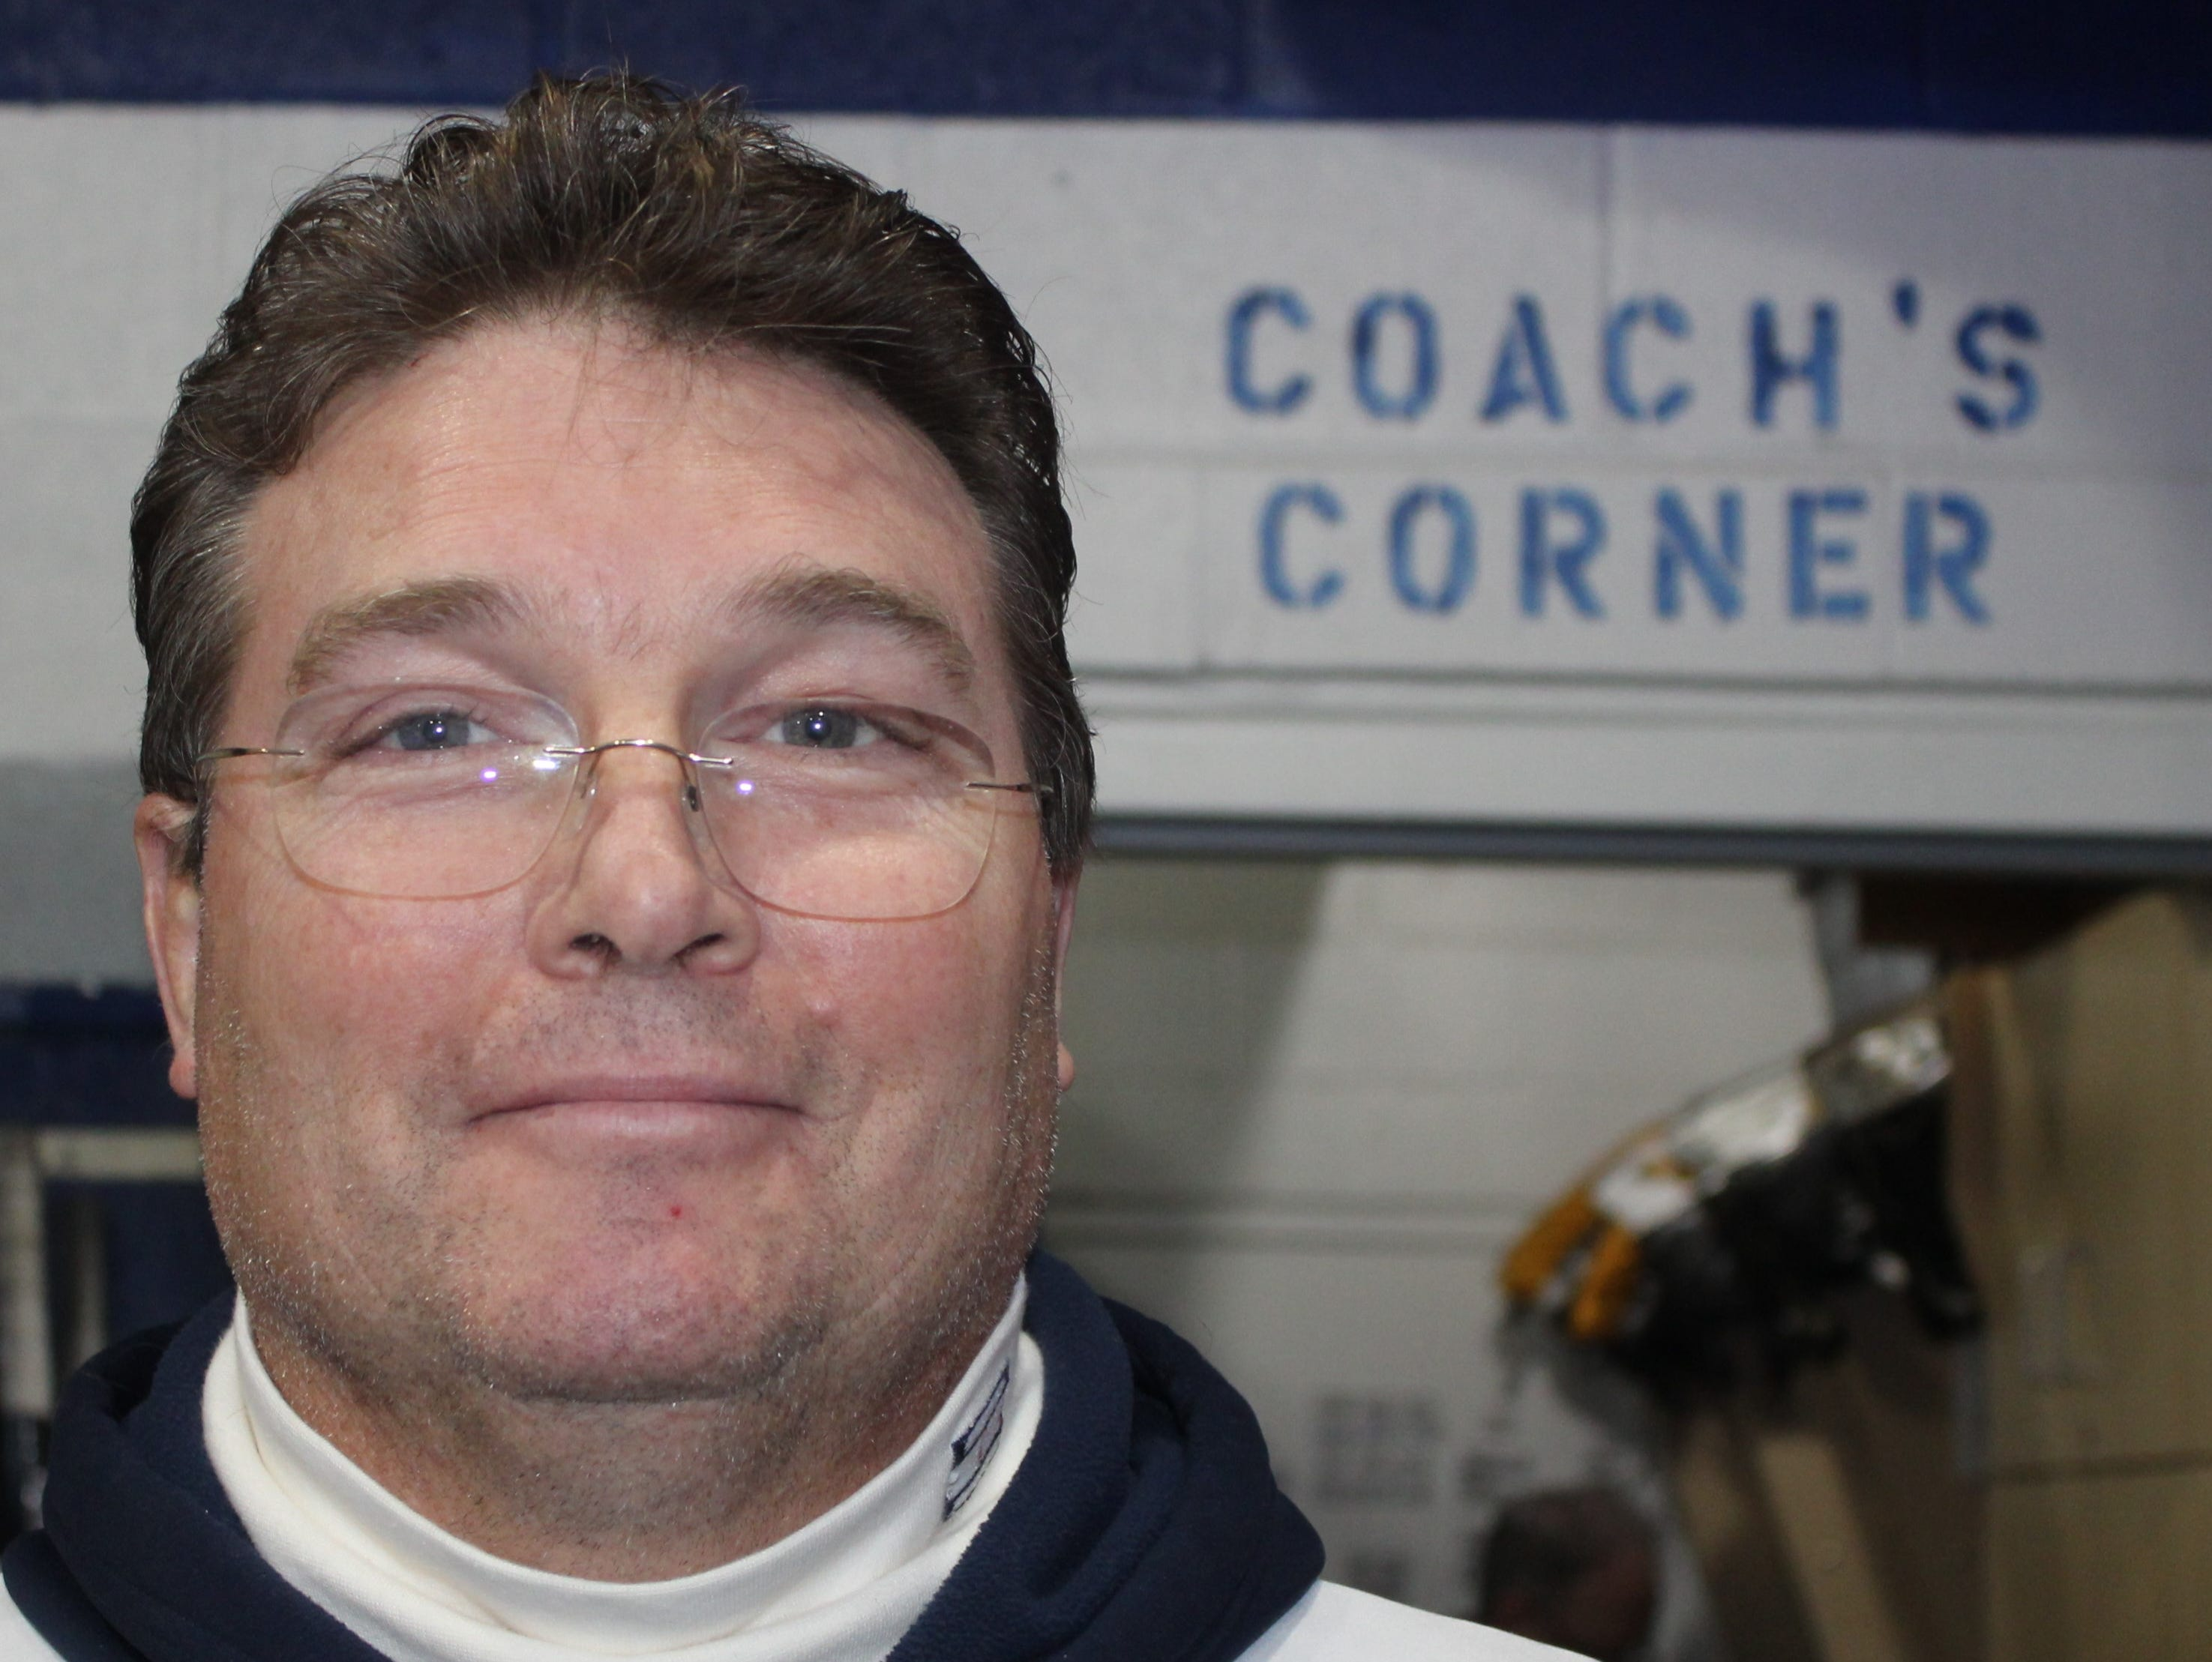 South Lyon Unified's veteran coach Bill McCreary said the program's new locker room was 'due' and a welcome addition.